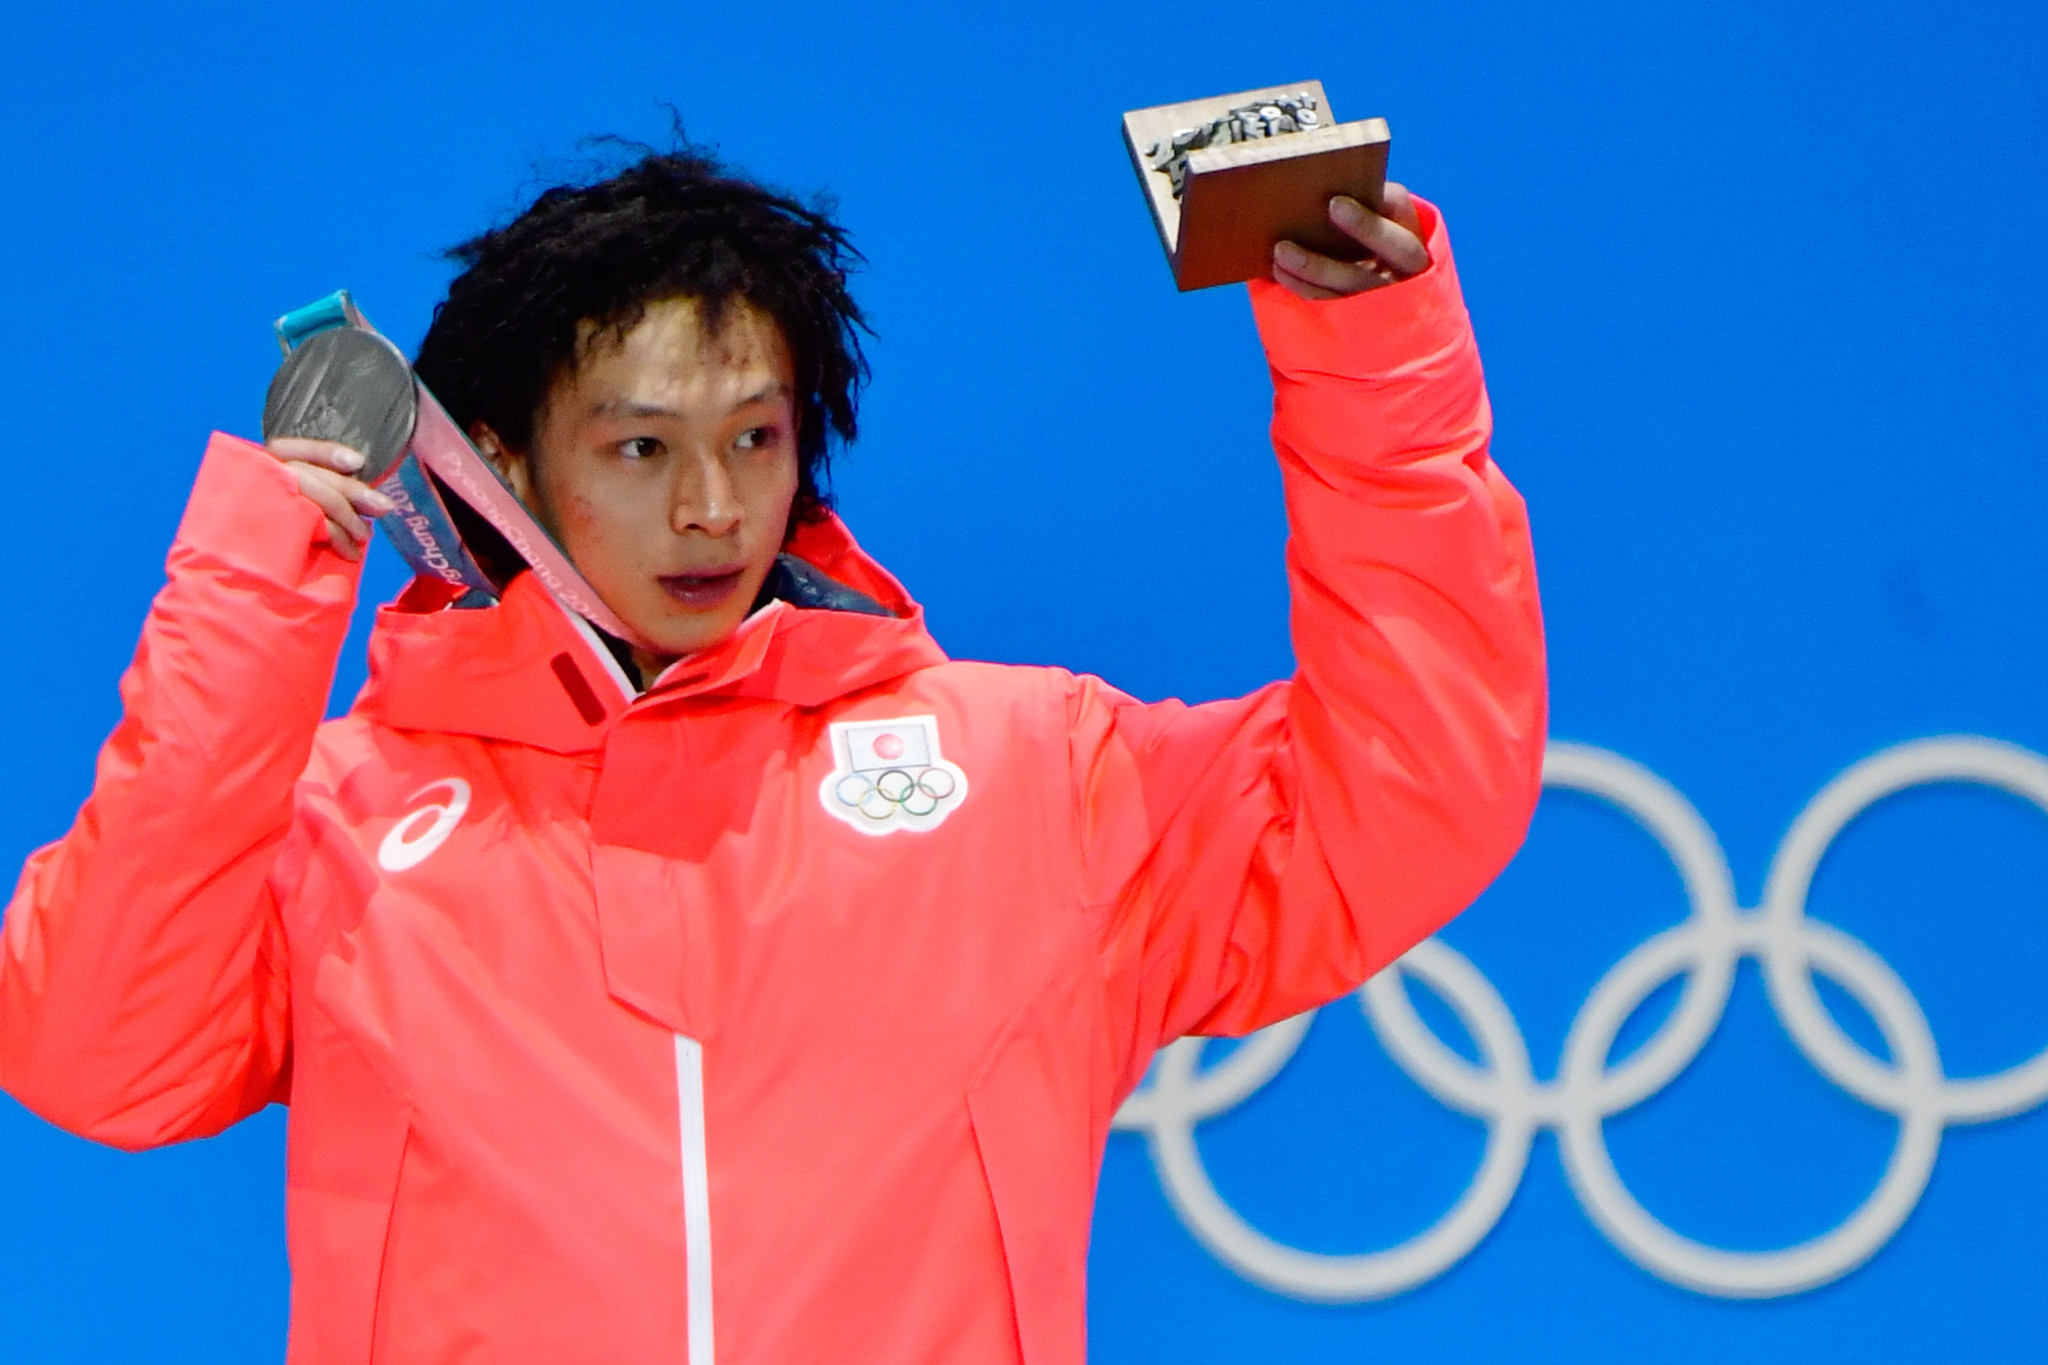 Ayumu Hirano, a two-time Olympic silver medallist in men's halfpipe snowboarding, will compete in Brazil ©Getty Images